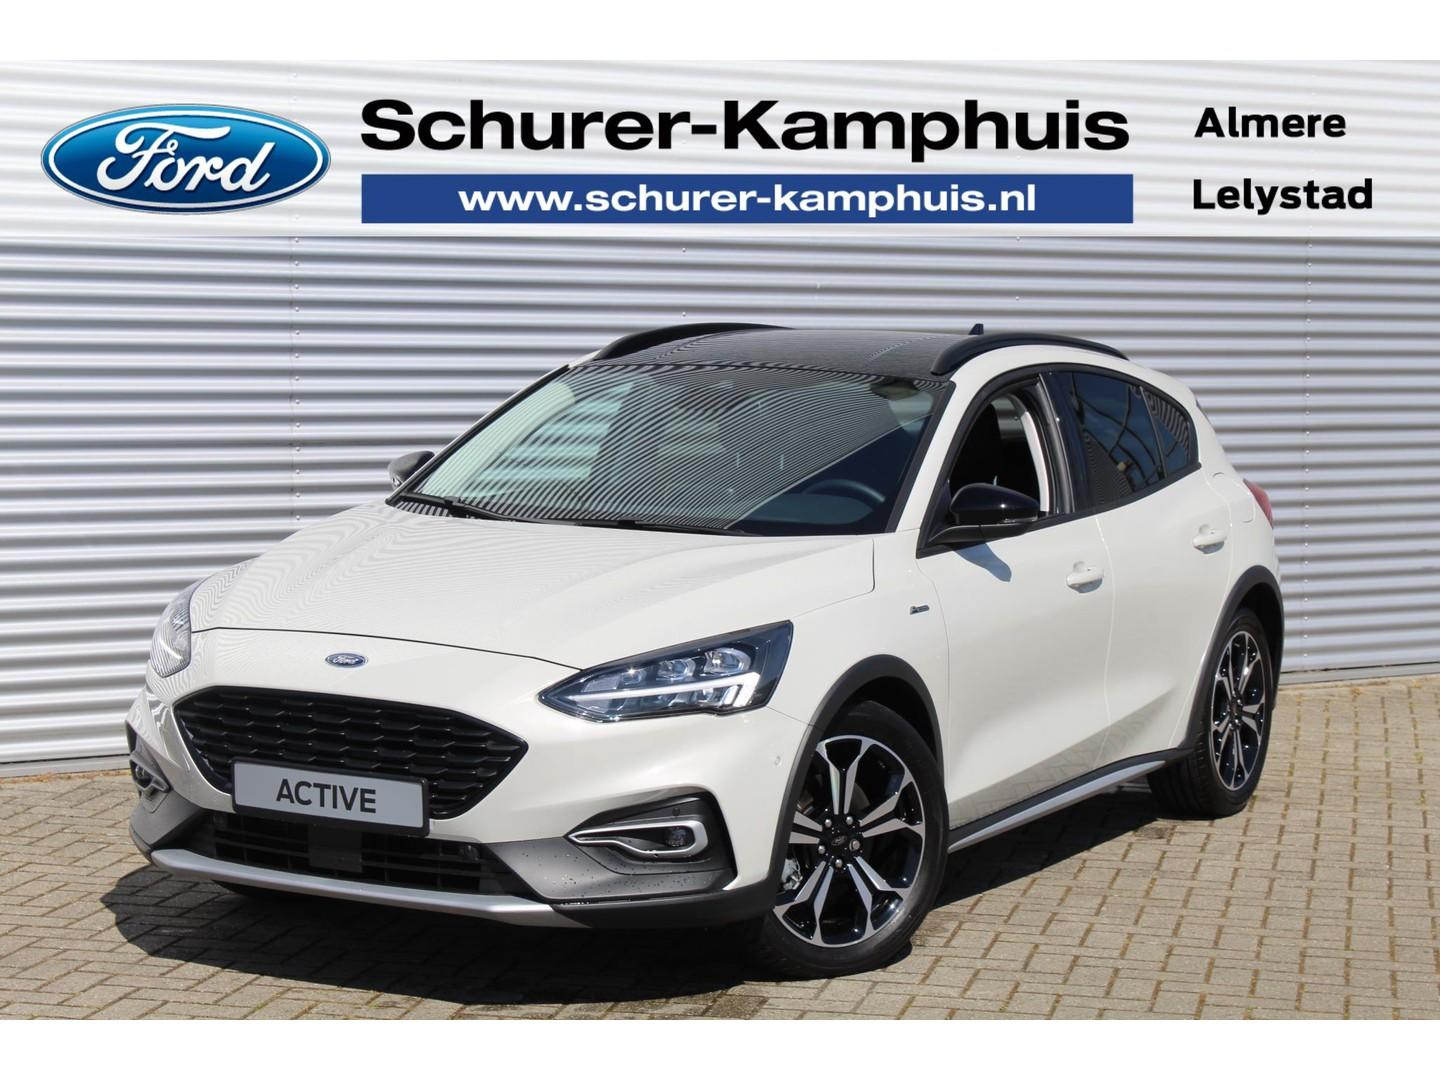 Ford Focus 1.0 ecoboost (125pk) active full options actie €6.000,- korting!!